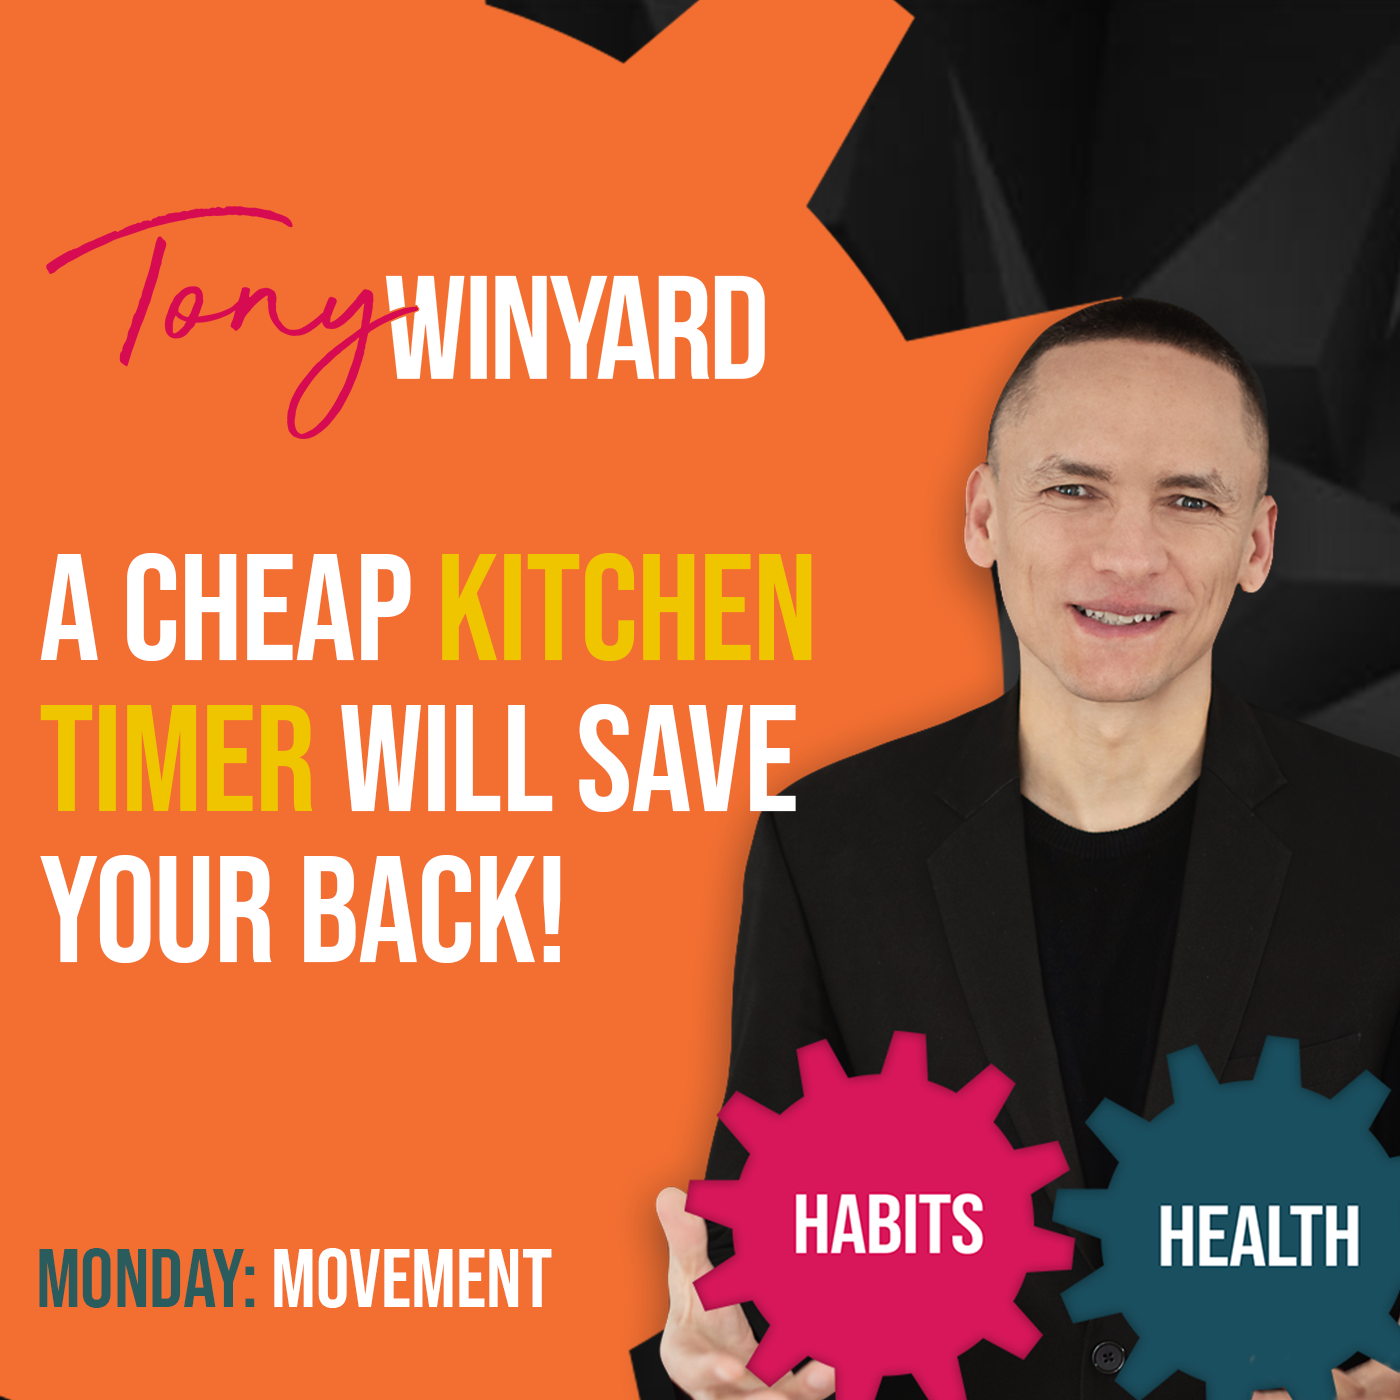 A cheap kitchen timer will save your back!